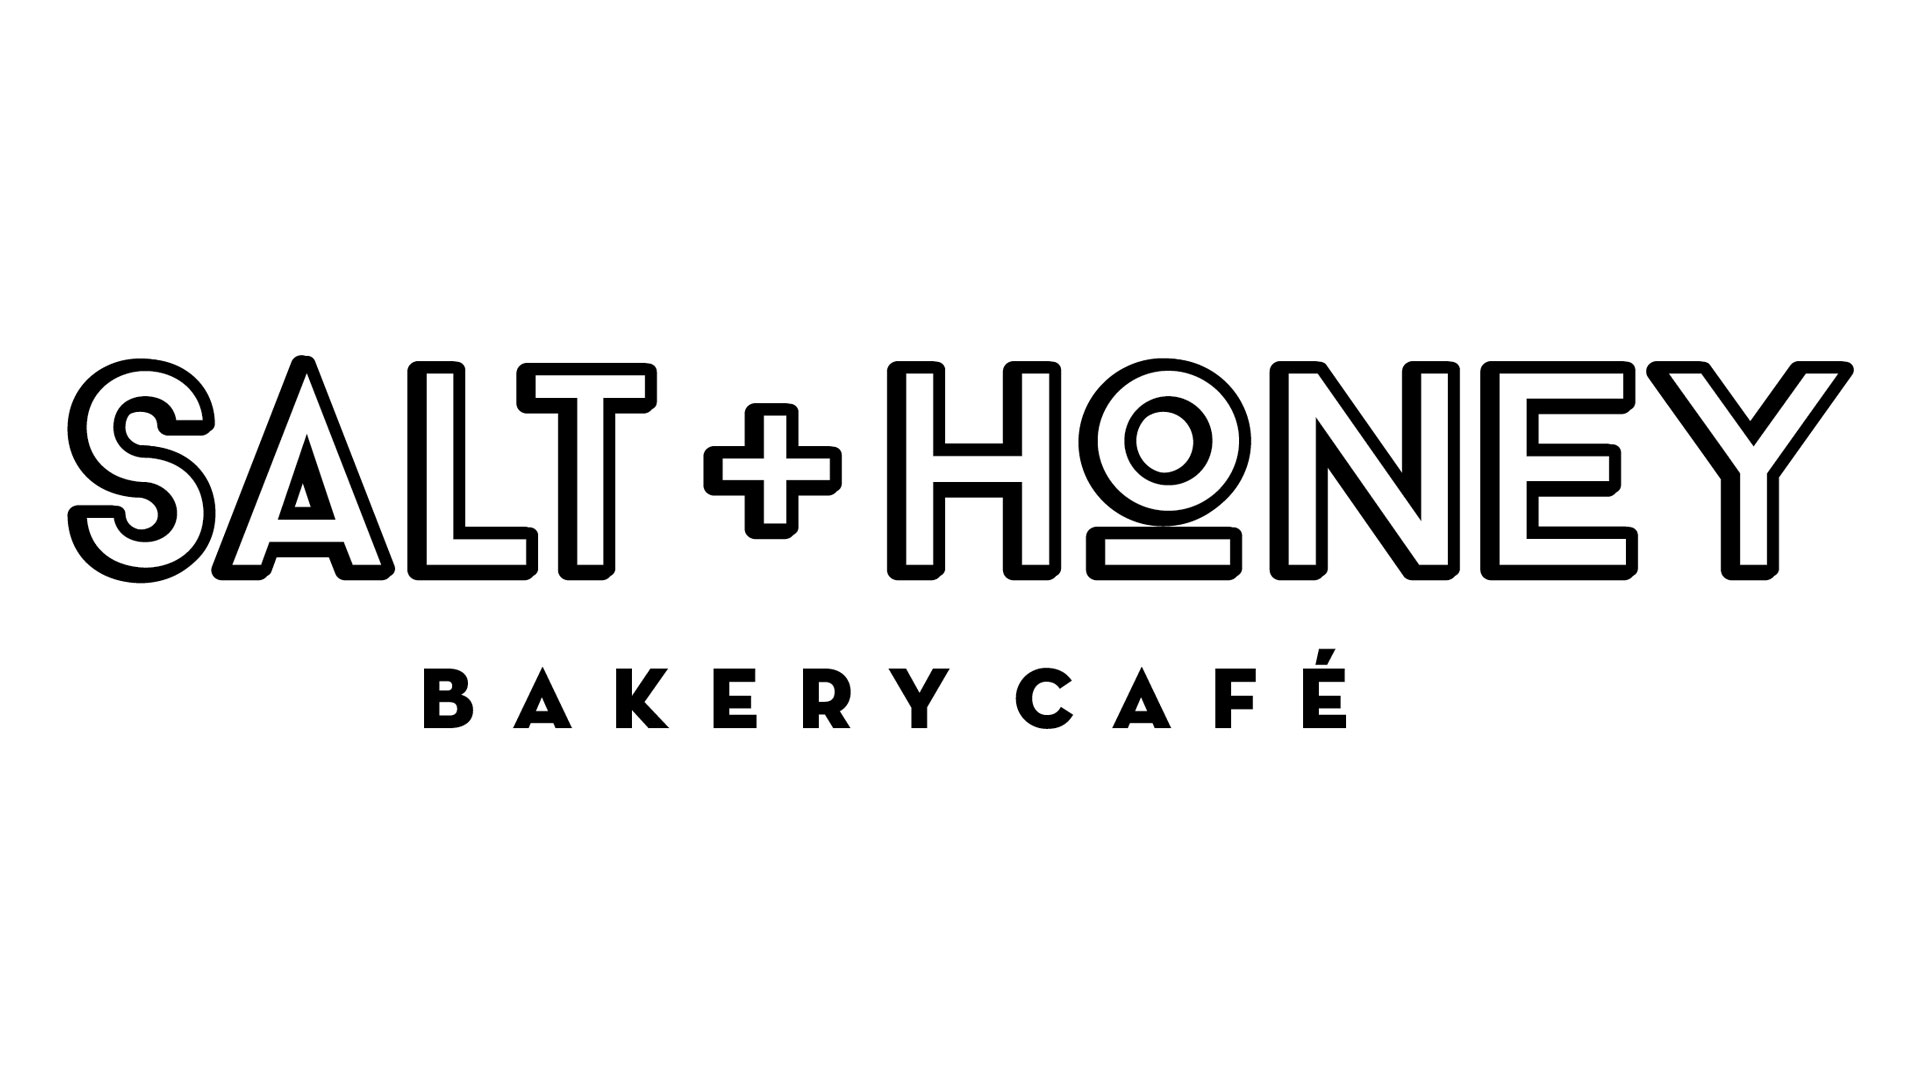 Salt + Honey: Bakery Cafe